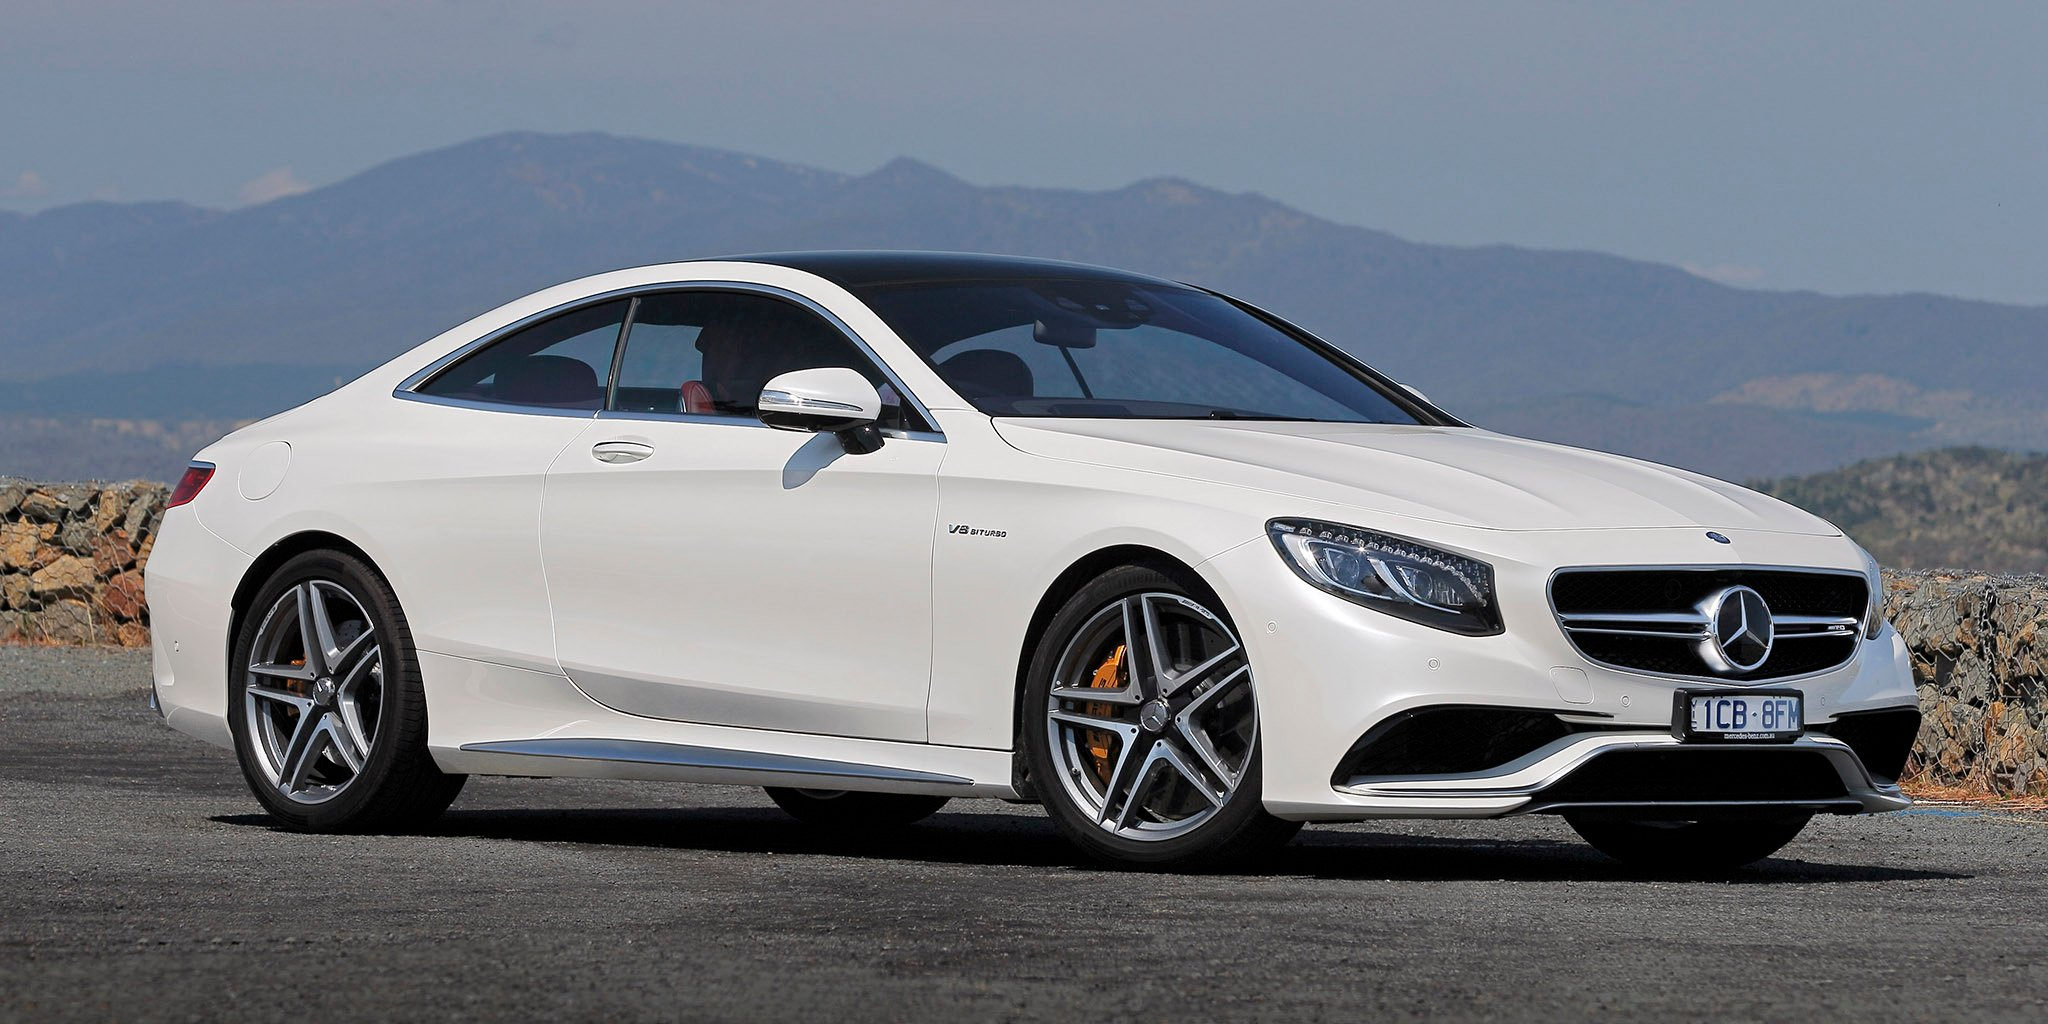 2015 mercedes benz s63 amg coupe review caradvice for Mercedes benz amg hatchback price